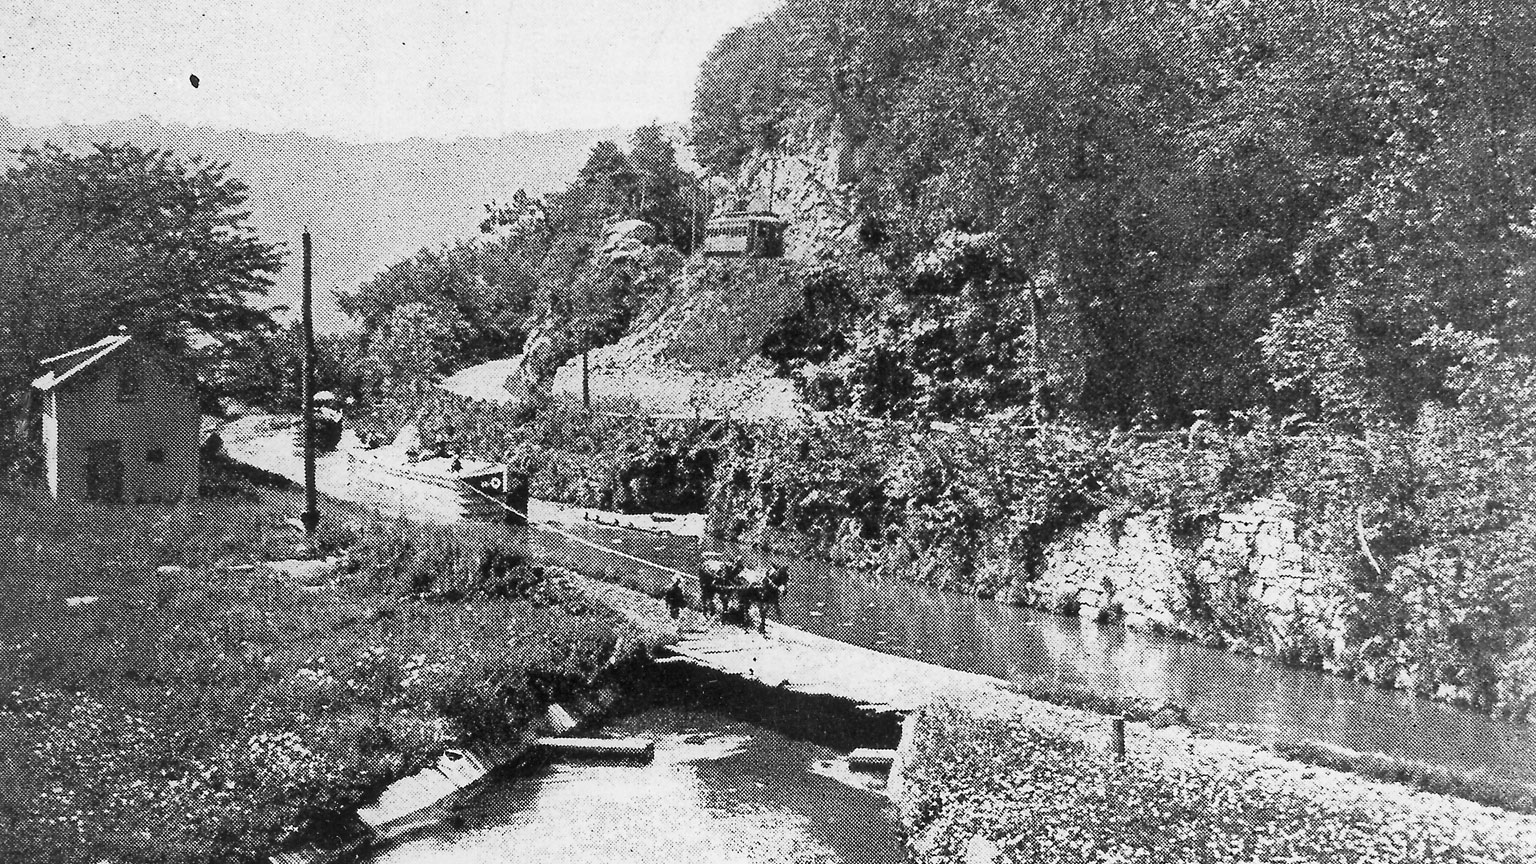 This picture shows the progress of time as the canal is still being used at the same time as the railroad.